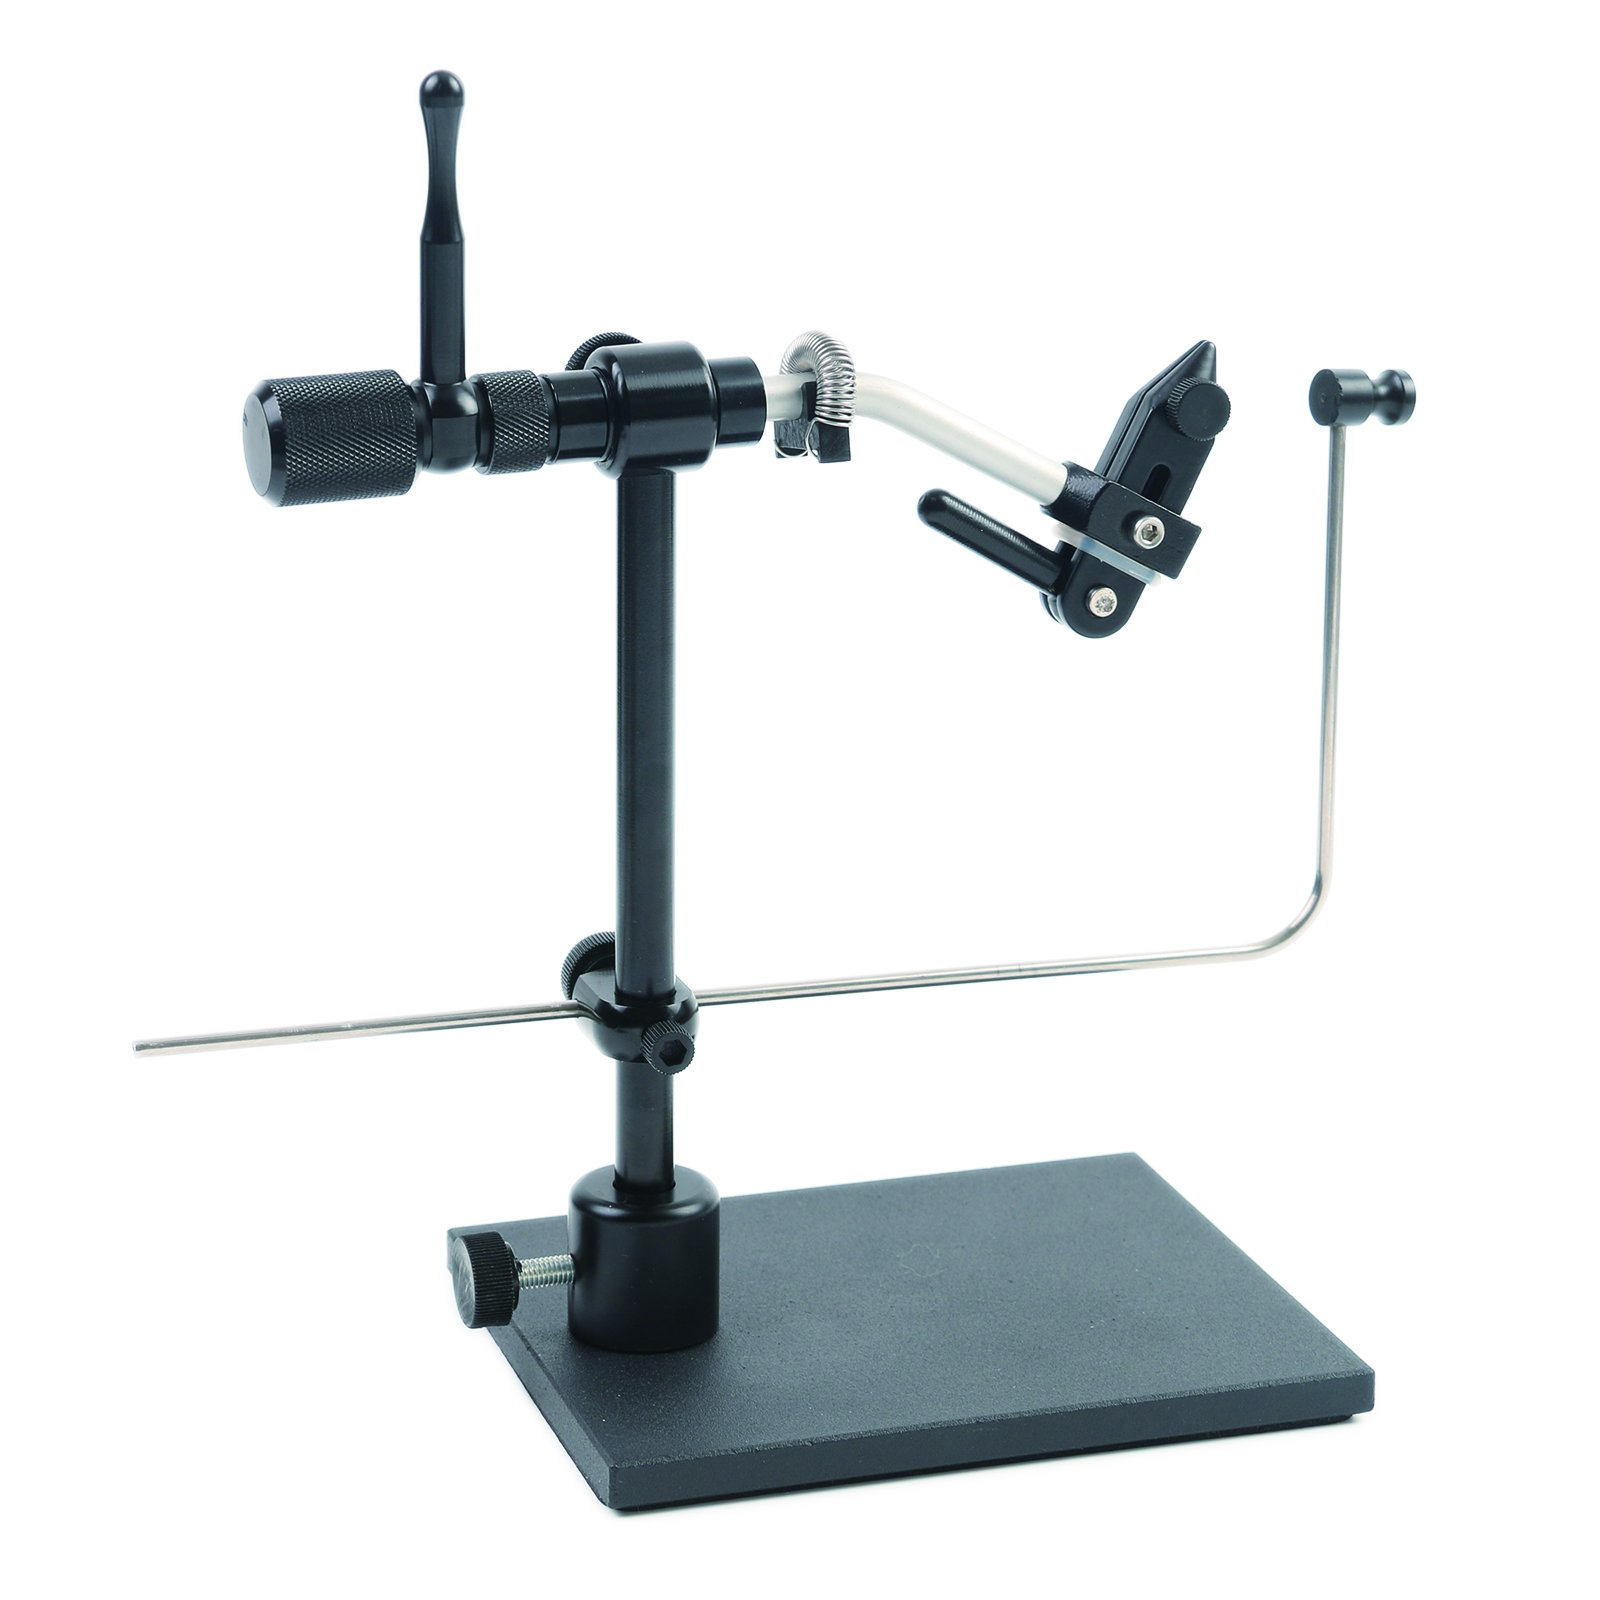 M MAXIMUMCATCH Maxcatch Rotary Fly Tying Vise Alloy Travel Vise with Base